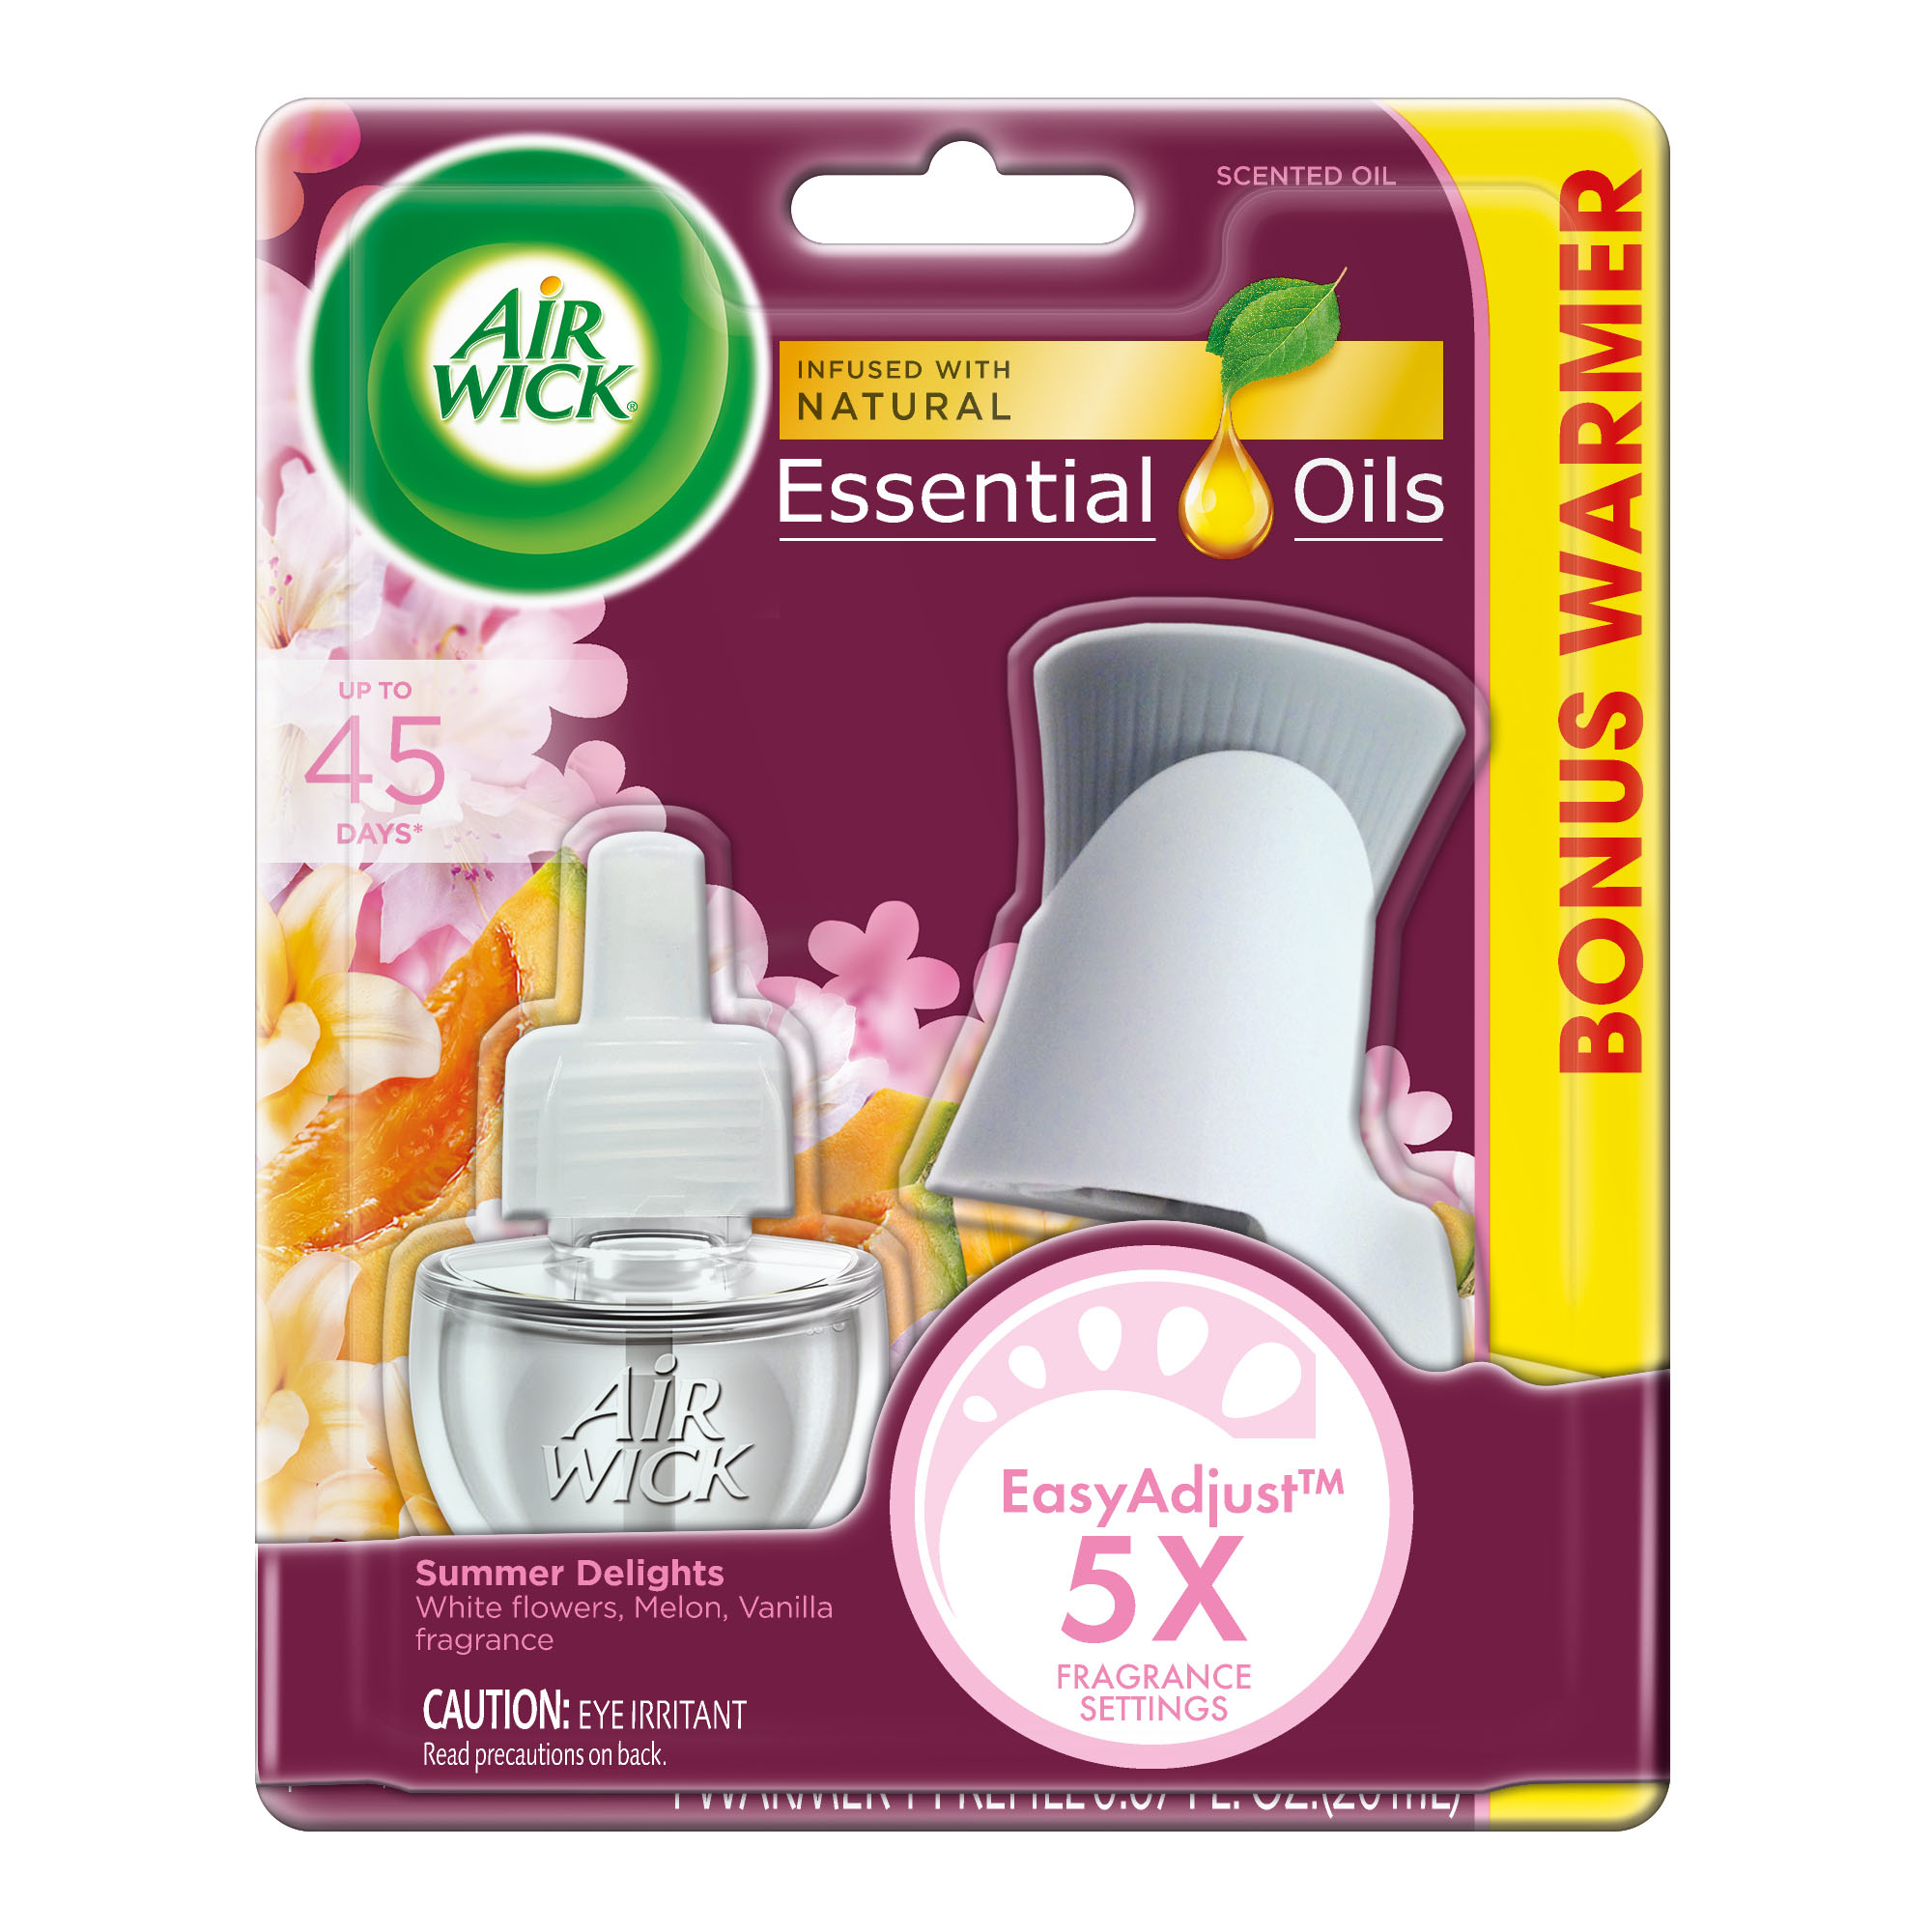 Air Wick Scented Oil Kit (Warmer + 1 Refill), Summer Delights